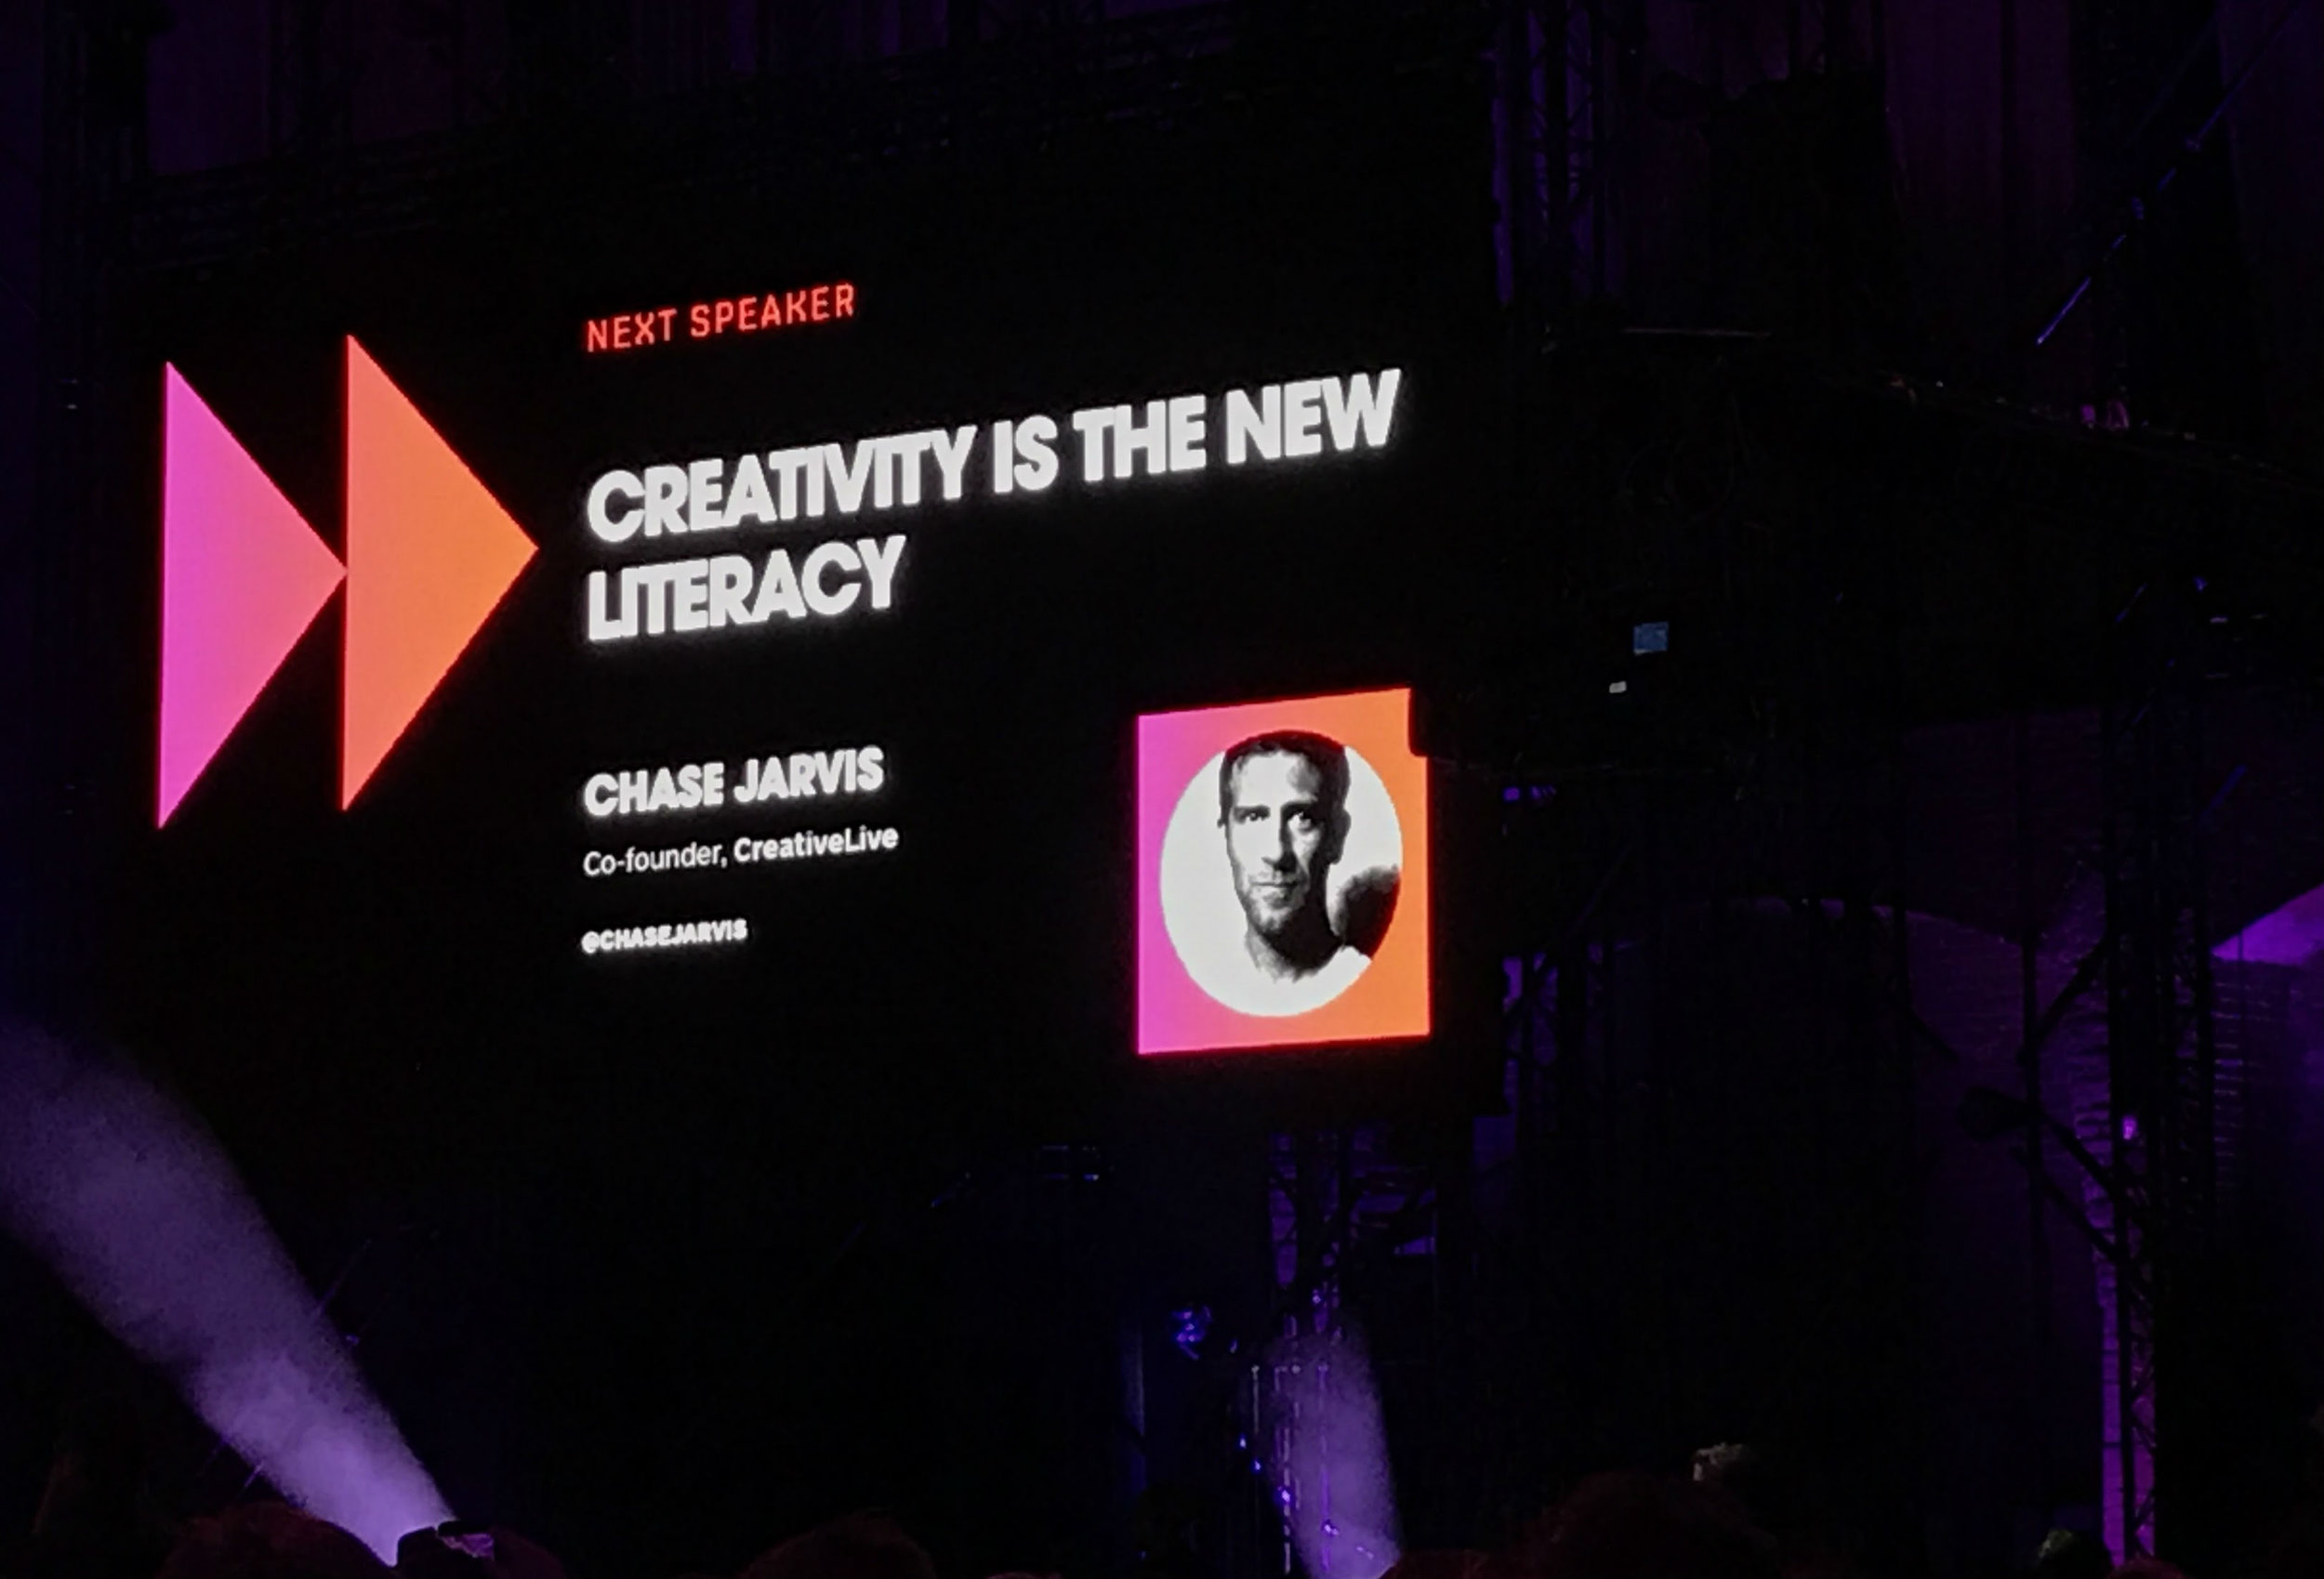 Chase Jarvis, Creative Live